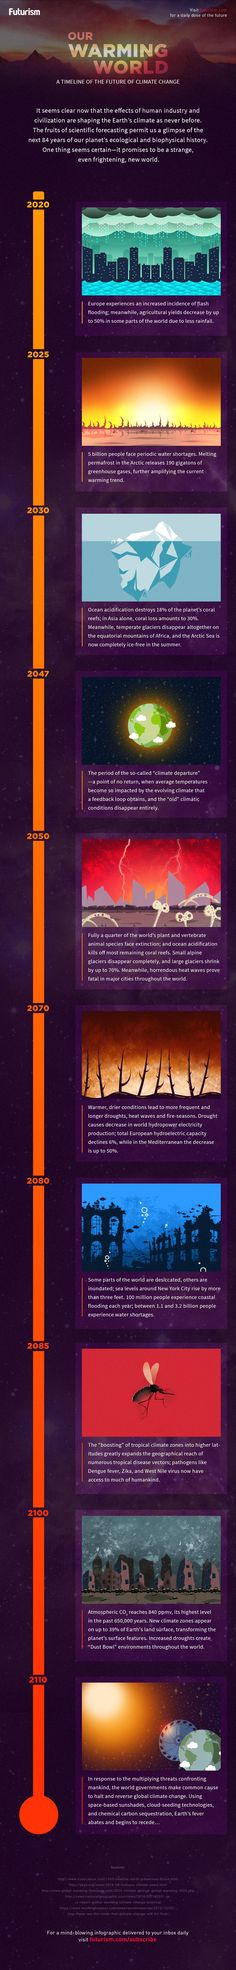 Our world is warming—human civilization is reshaping the Earth's climate as never before.   Here's a glimpse of our future fate…if we don't mend our ways.  http://futurism.com/images/our-warming-world-the-future-of-climate-change-infographic/?utm_campaign=coschedule&utm_source=pinterest&utm_medium=Futurism&utm_content=Our%20Warming%20World%3A%20The%20Future%20of%20Climate%20Change%20%5BINFOGRAPHIC%5D